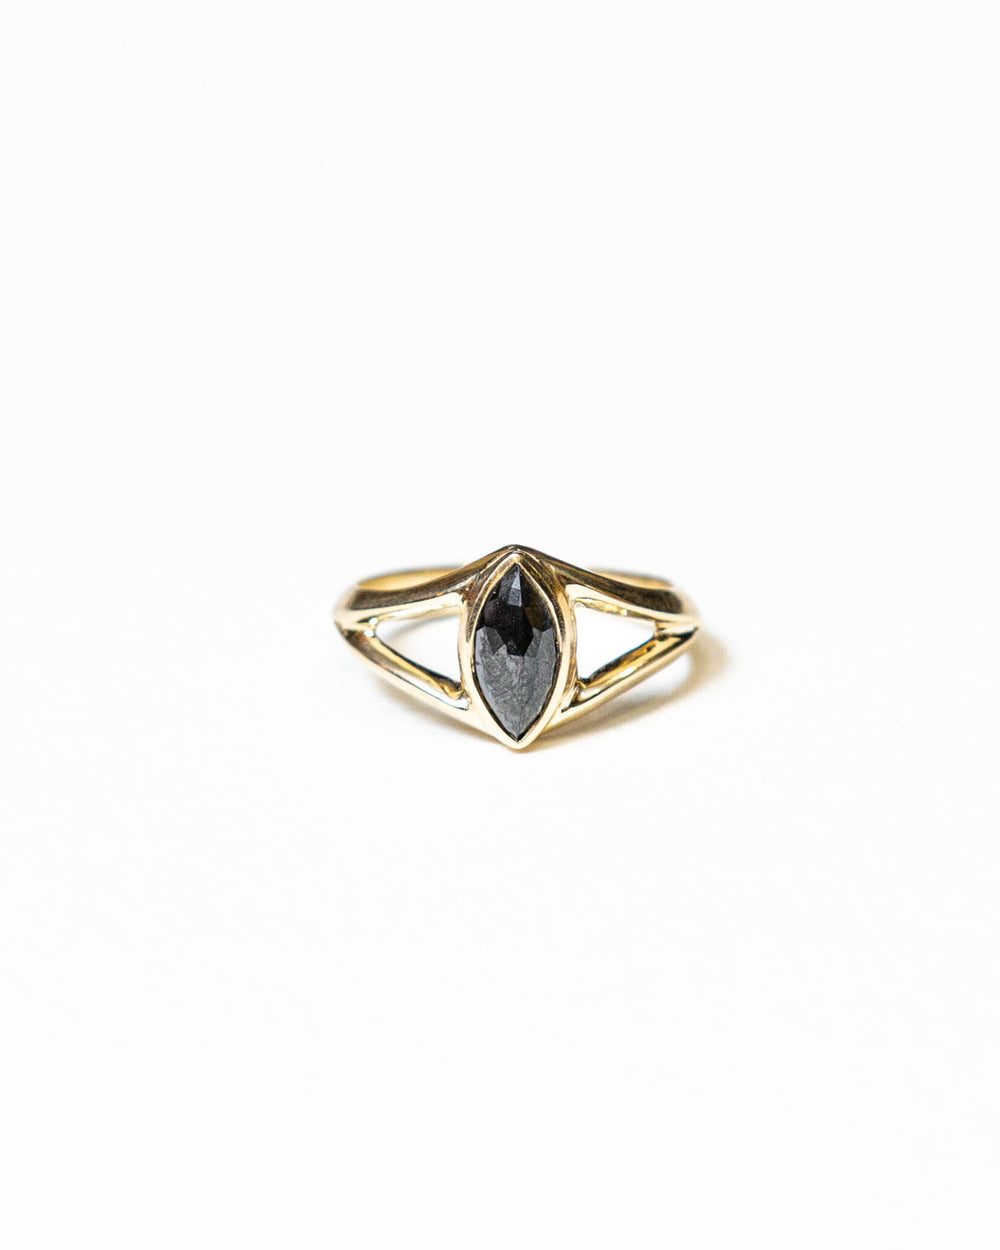 Black rose cut marquise diamond and gold ring by Bexon Jewelry